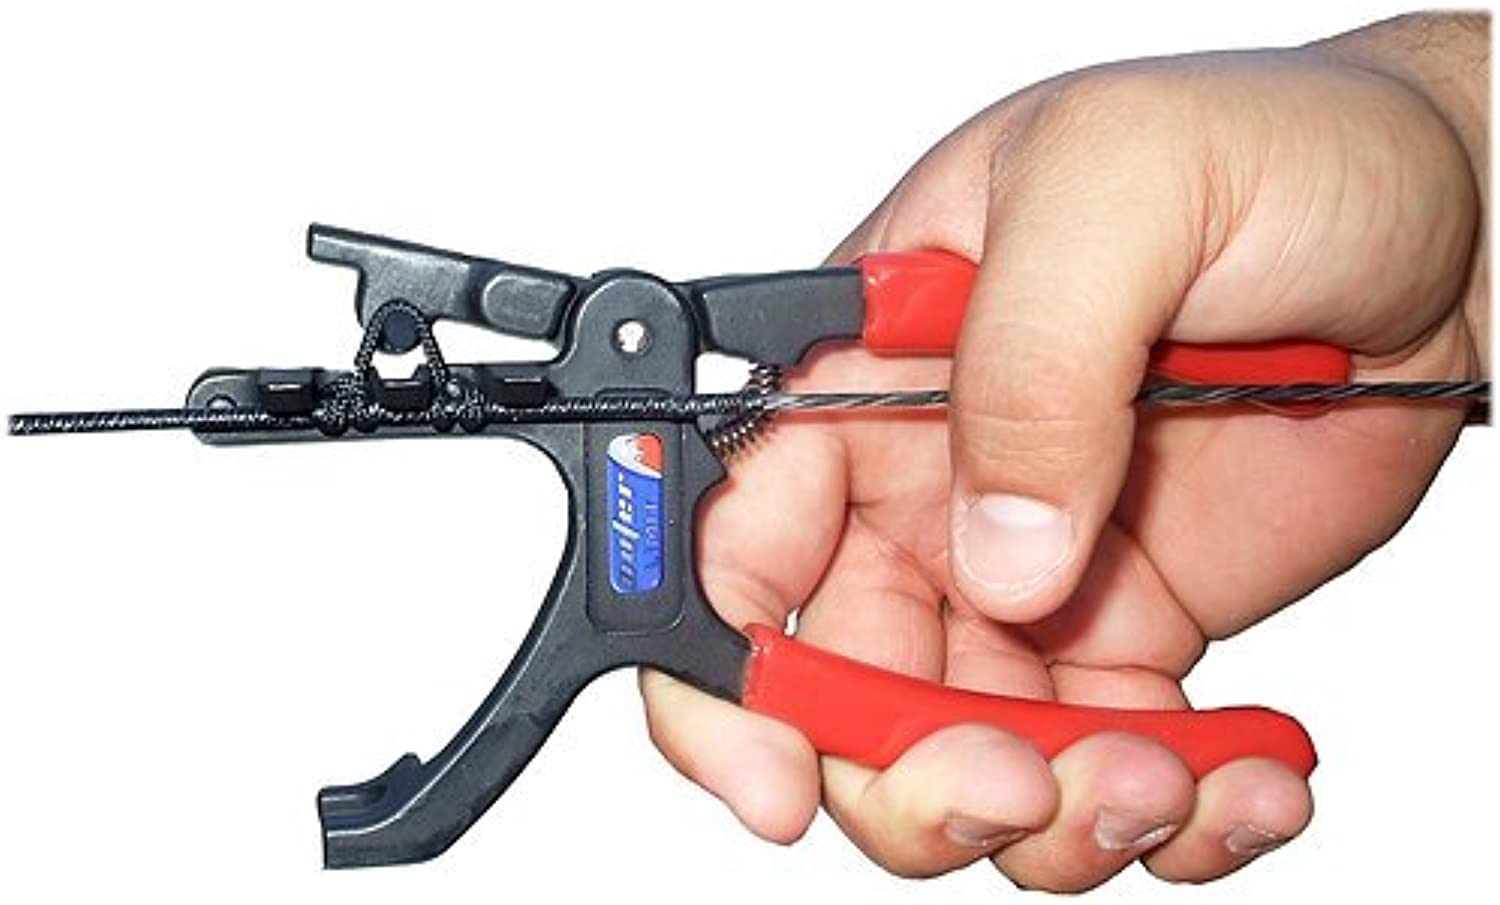 Outer Limit Stretch D - loop Pliers Pliers Pliers by Outer Limit